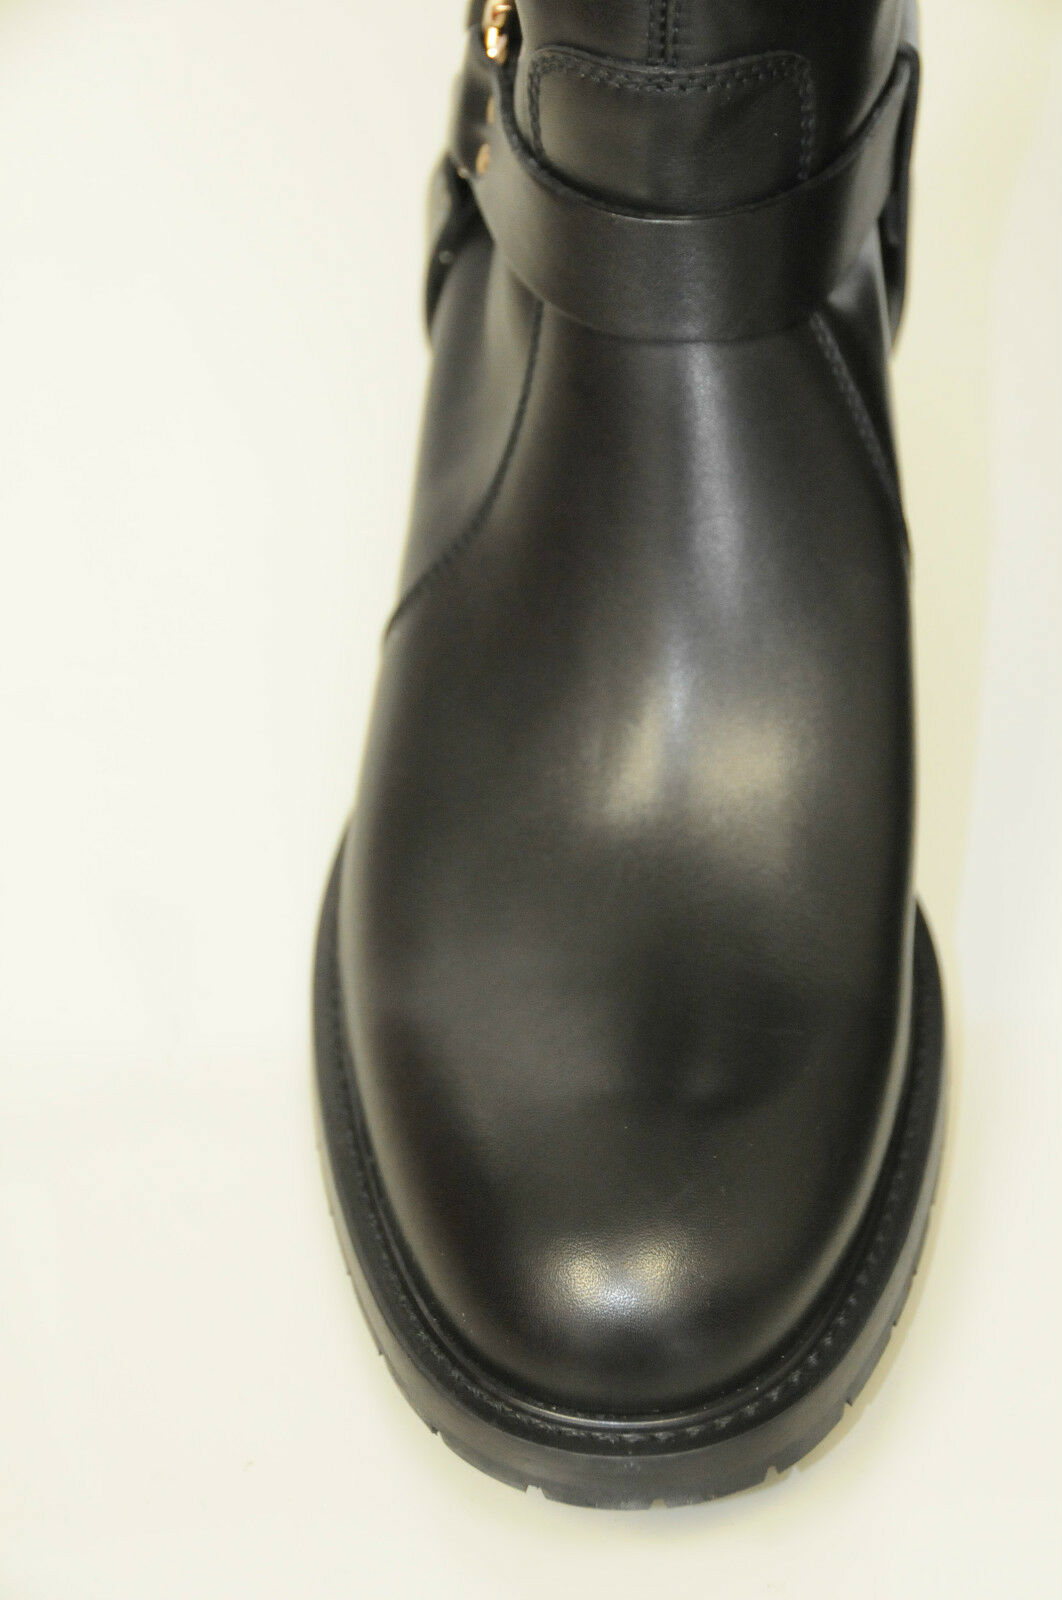 895 895 895 NEW Salvatore Ferragamo Black Leather riding motorcycle Flat BOOTS SHOES 10 918339